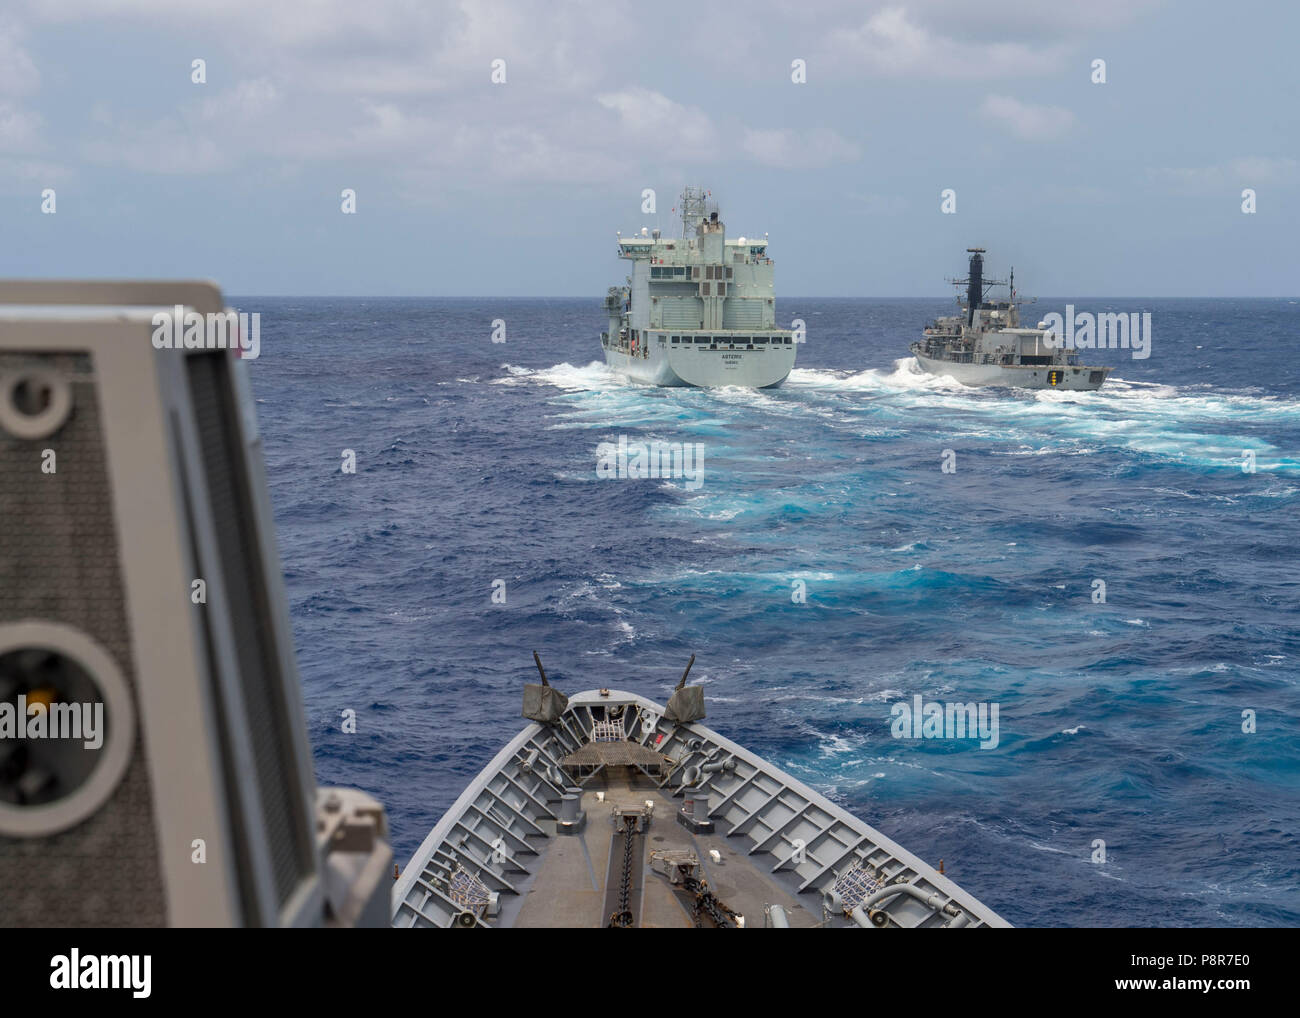 180711-N-YR245-0518 PACIFIC OCEAN (July 11, 2018) Ticonderoga-class guided-missile cruiser USS Lake Champlain (CG 57) approaches Royal Canadian Navy replenishment vessel MV Asterix with Chilean frigate CNS Almirante Lynch (FF 07) alongside at a replenishment-at-sea approach training during Rim of the Pacific (RIMPAC) exercise, July 11. Twenty-five nations, 46 ships and five submarines, and about 200 aircraft and 25,000 personnel are participating RIMPAC from June 27 to Aug. 2 in and around the Hawaiian Islands and Southern California. The world's largest international maritime exercise, RIMPAC Stock Photo